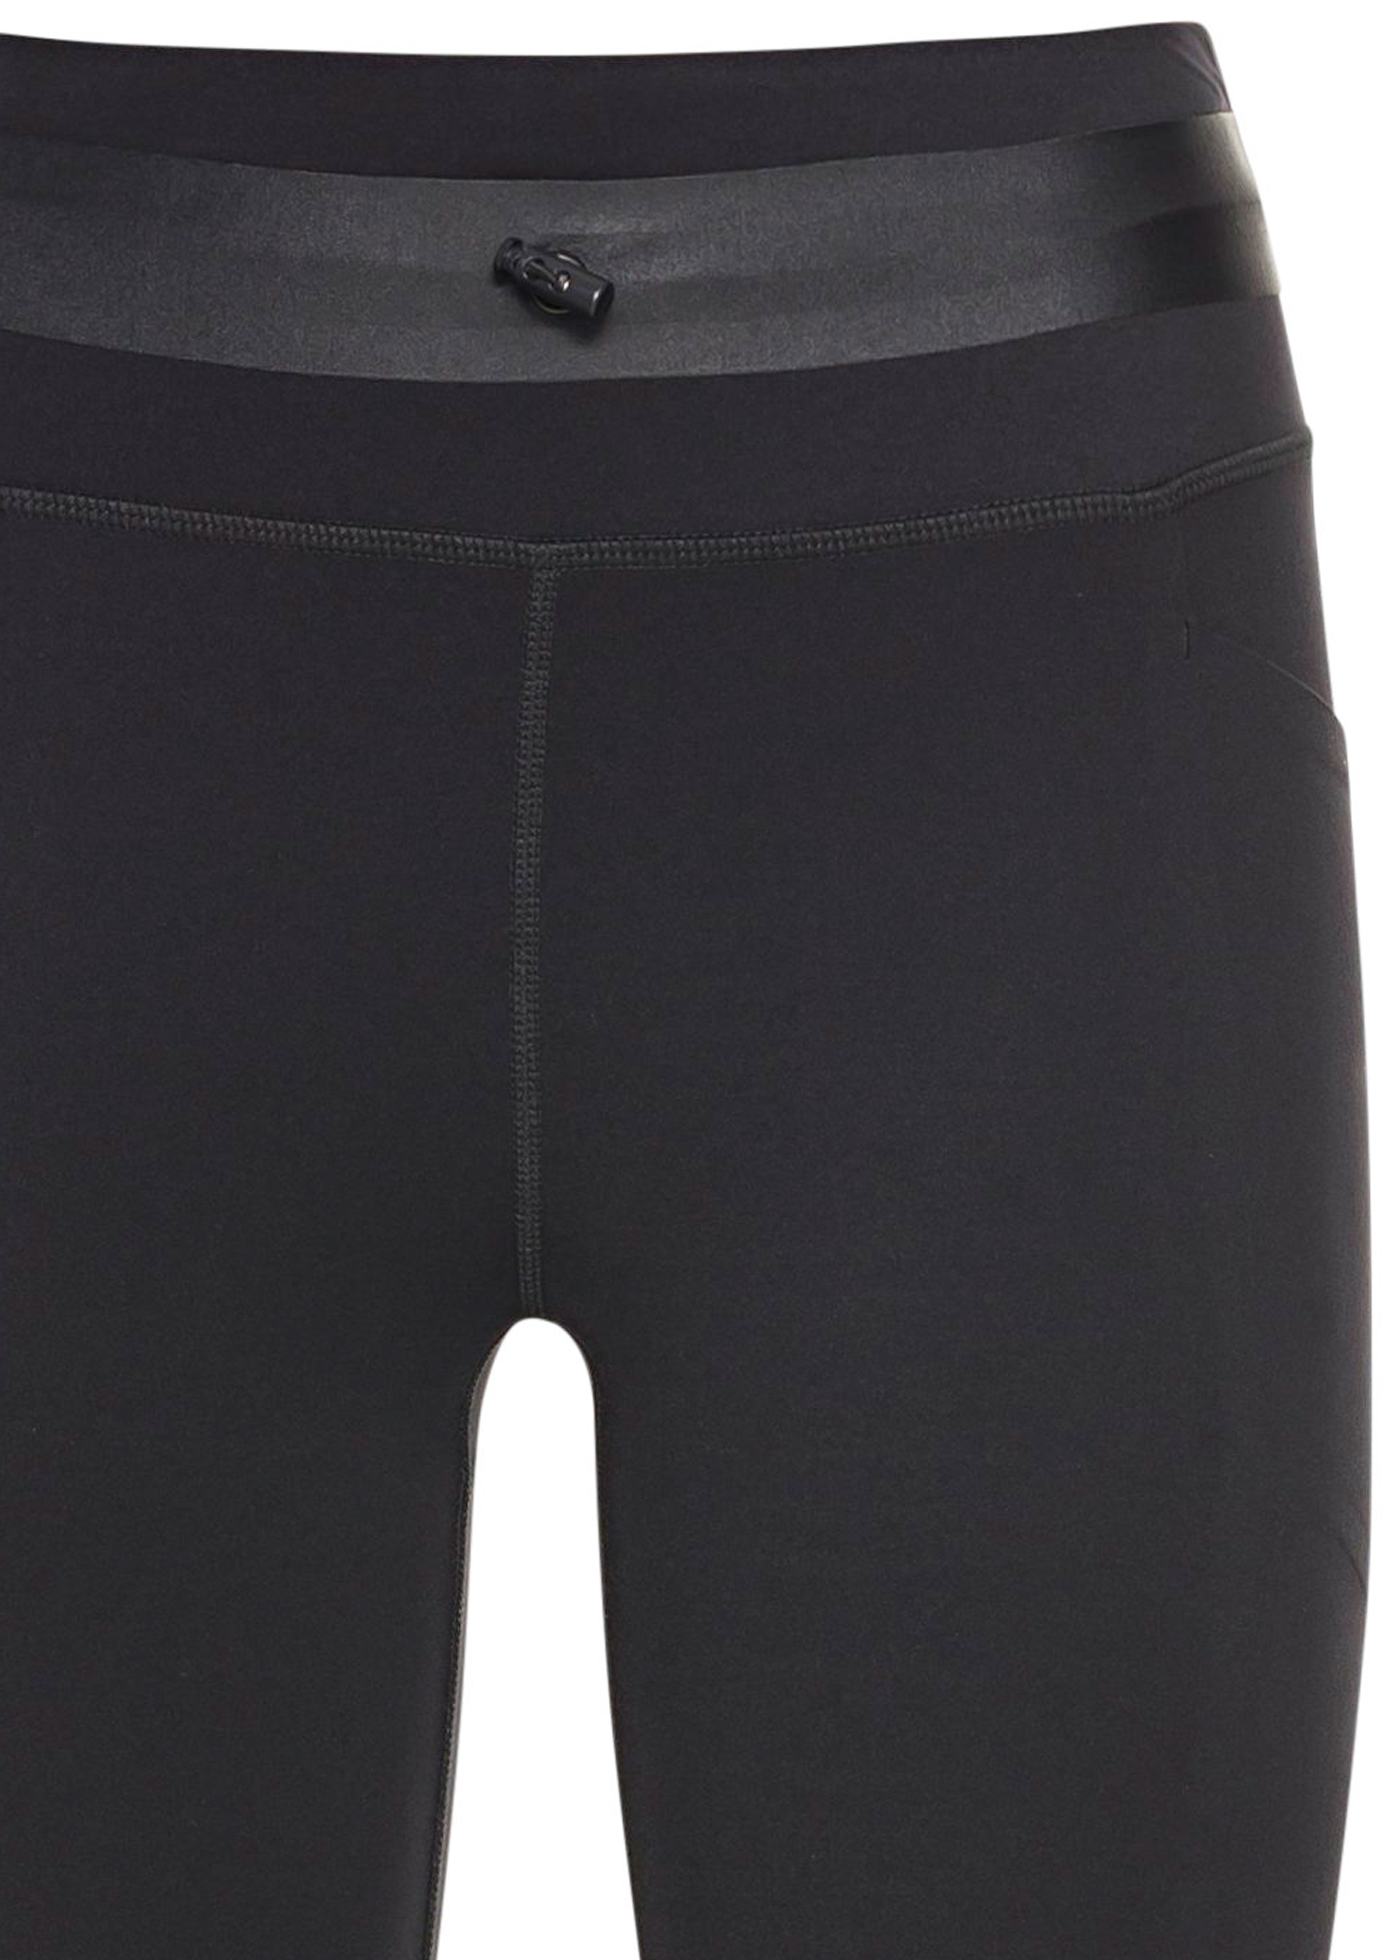 Power Mission High Waist 7/8 Workout Leggings image number 2